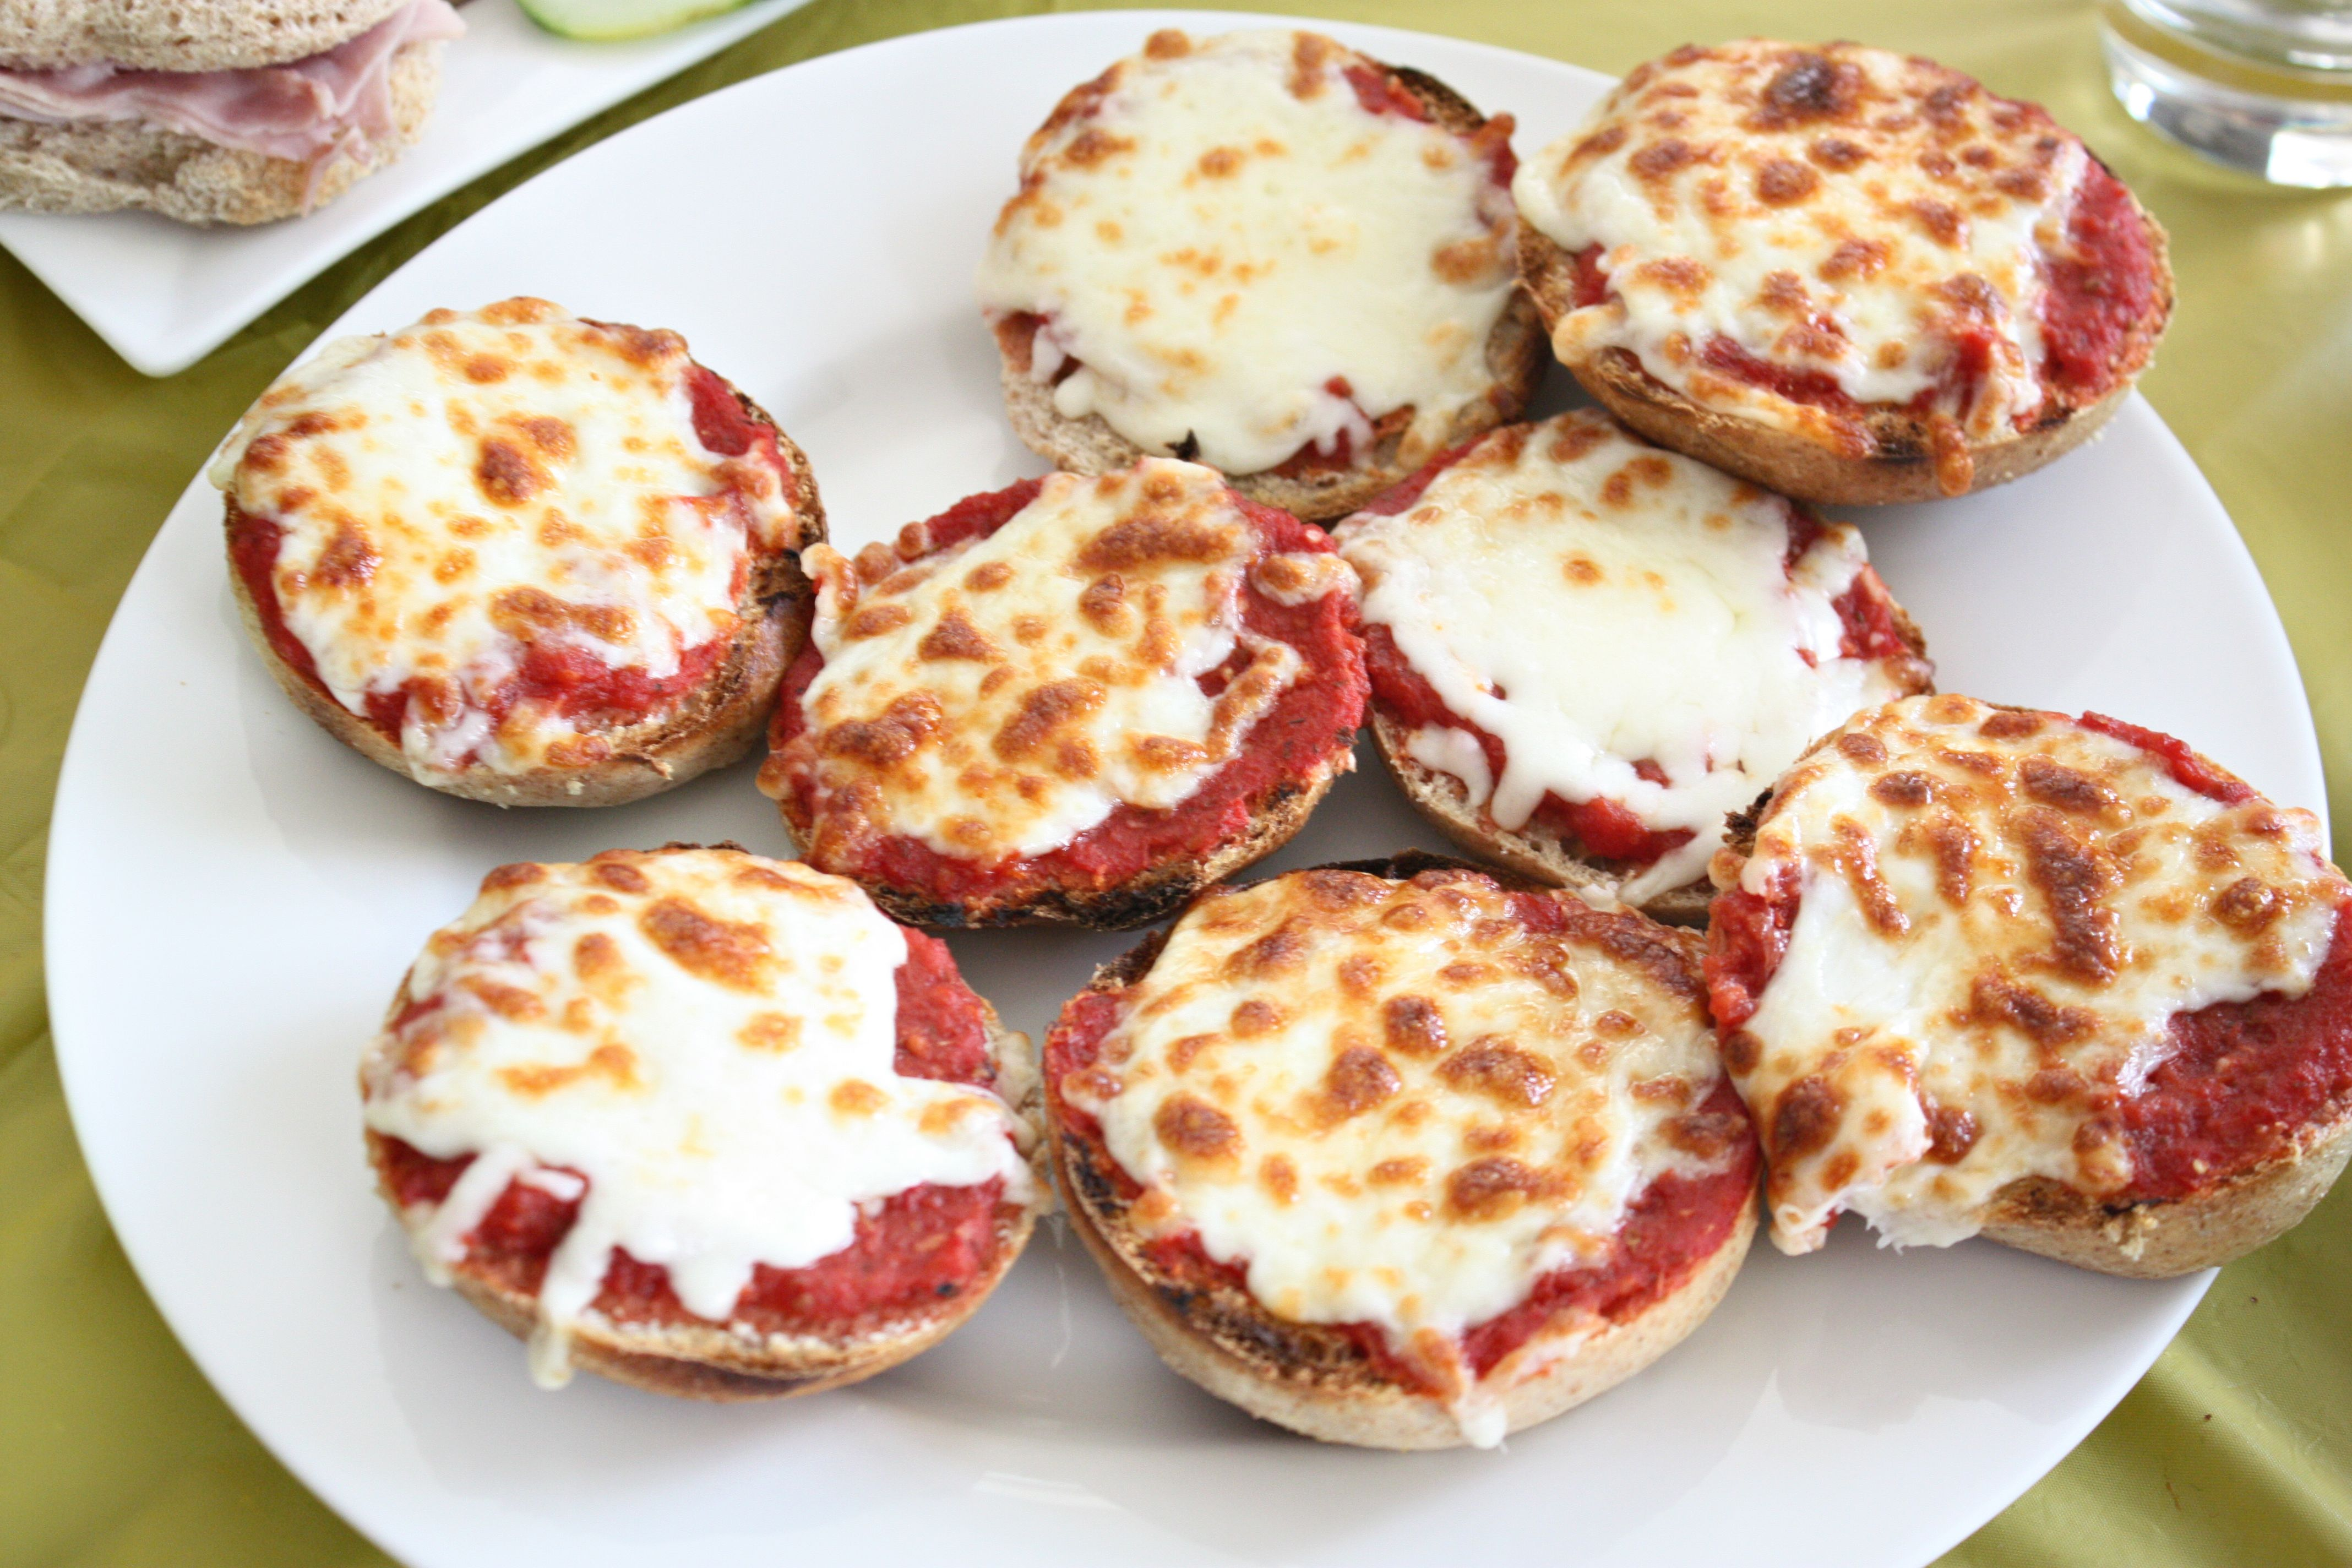 Birthday Dinner Party Menu Ideas Part - 28: Kids-Birthday-Party-Menus-Ideas-Mini-Pizza.jpg (